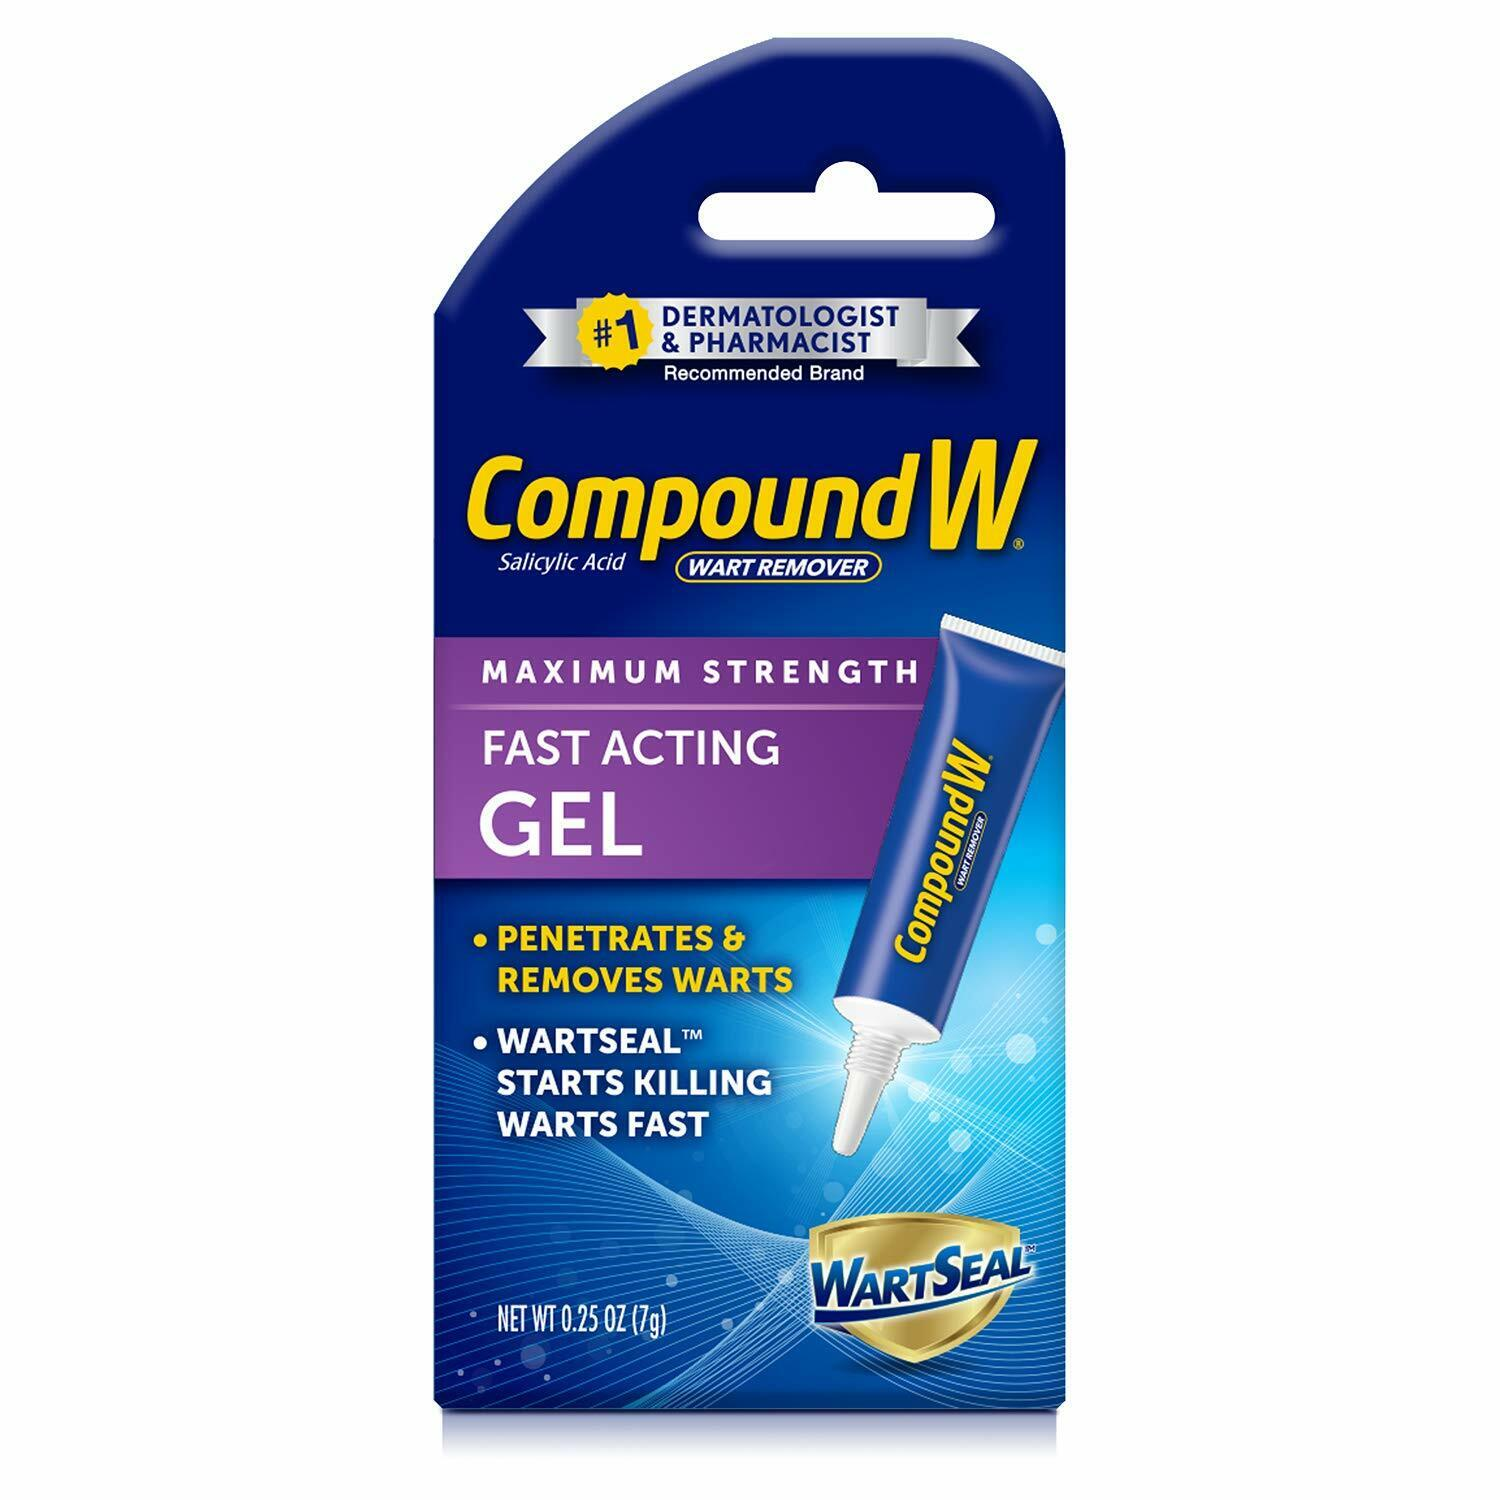 Compound W Maximum Strength Fast Acting Gel Wart Remover, 0.